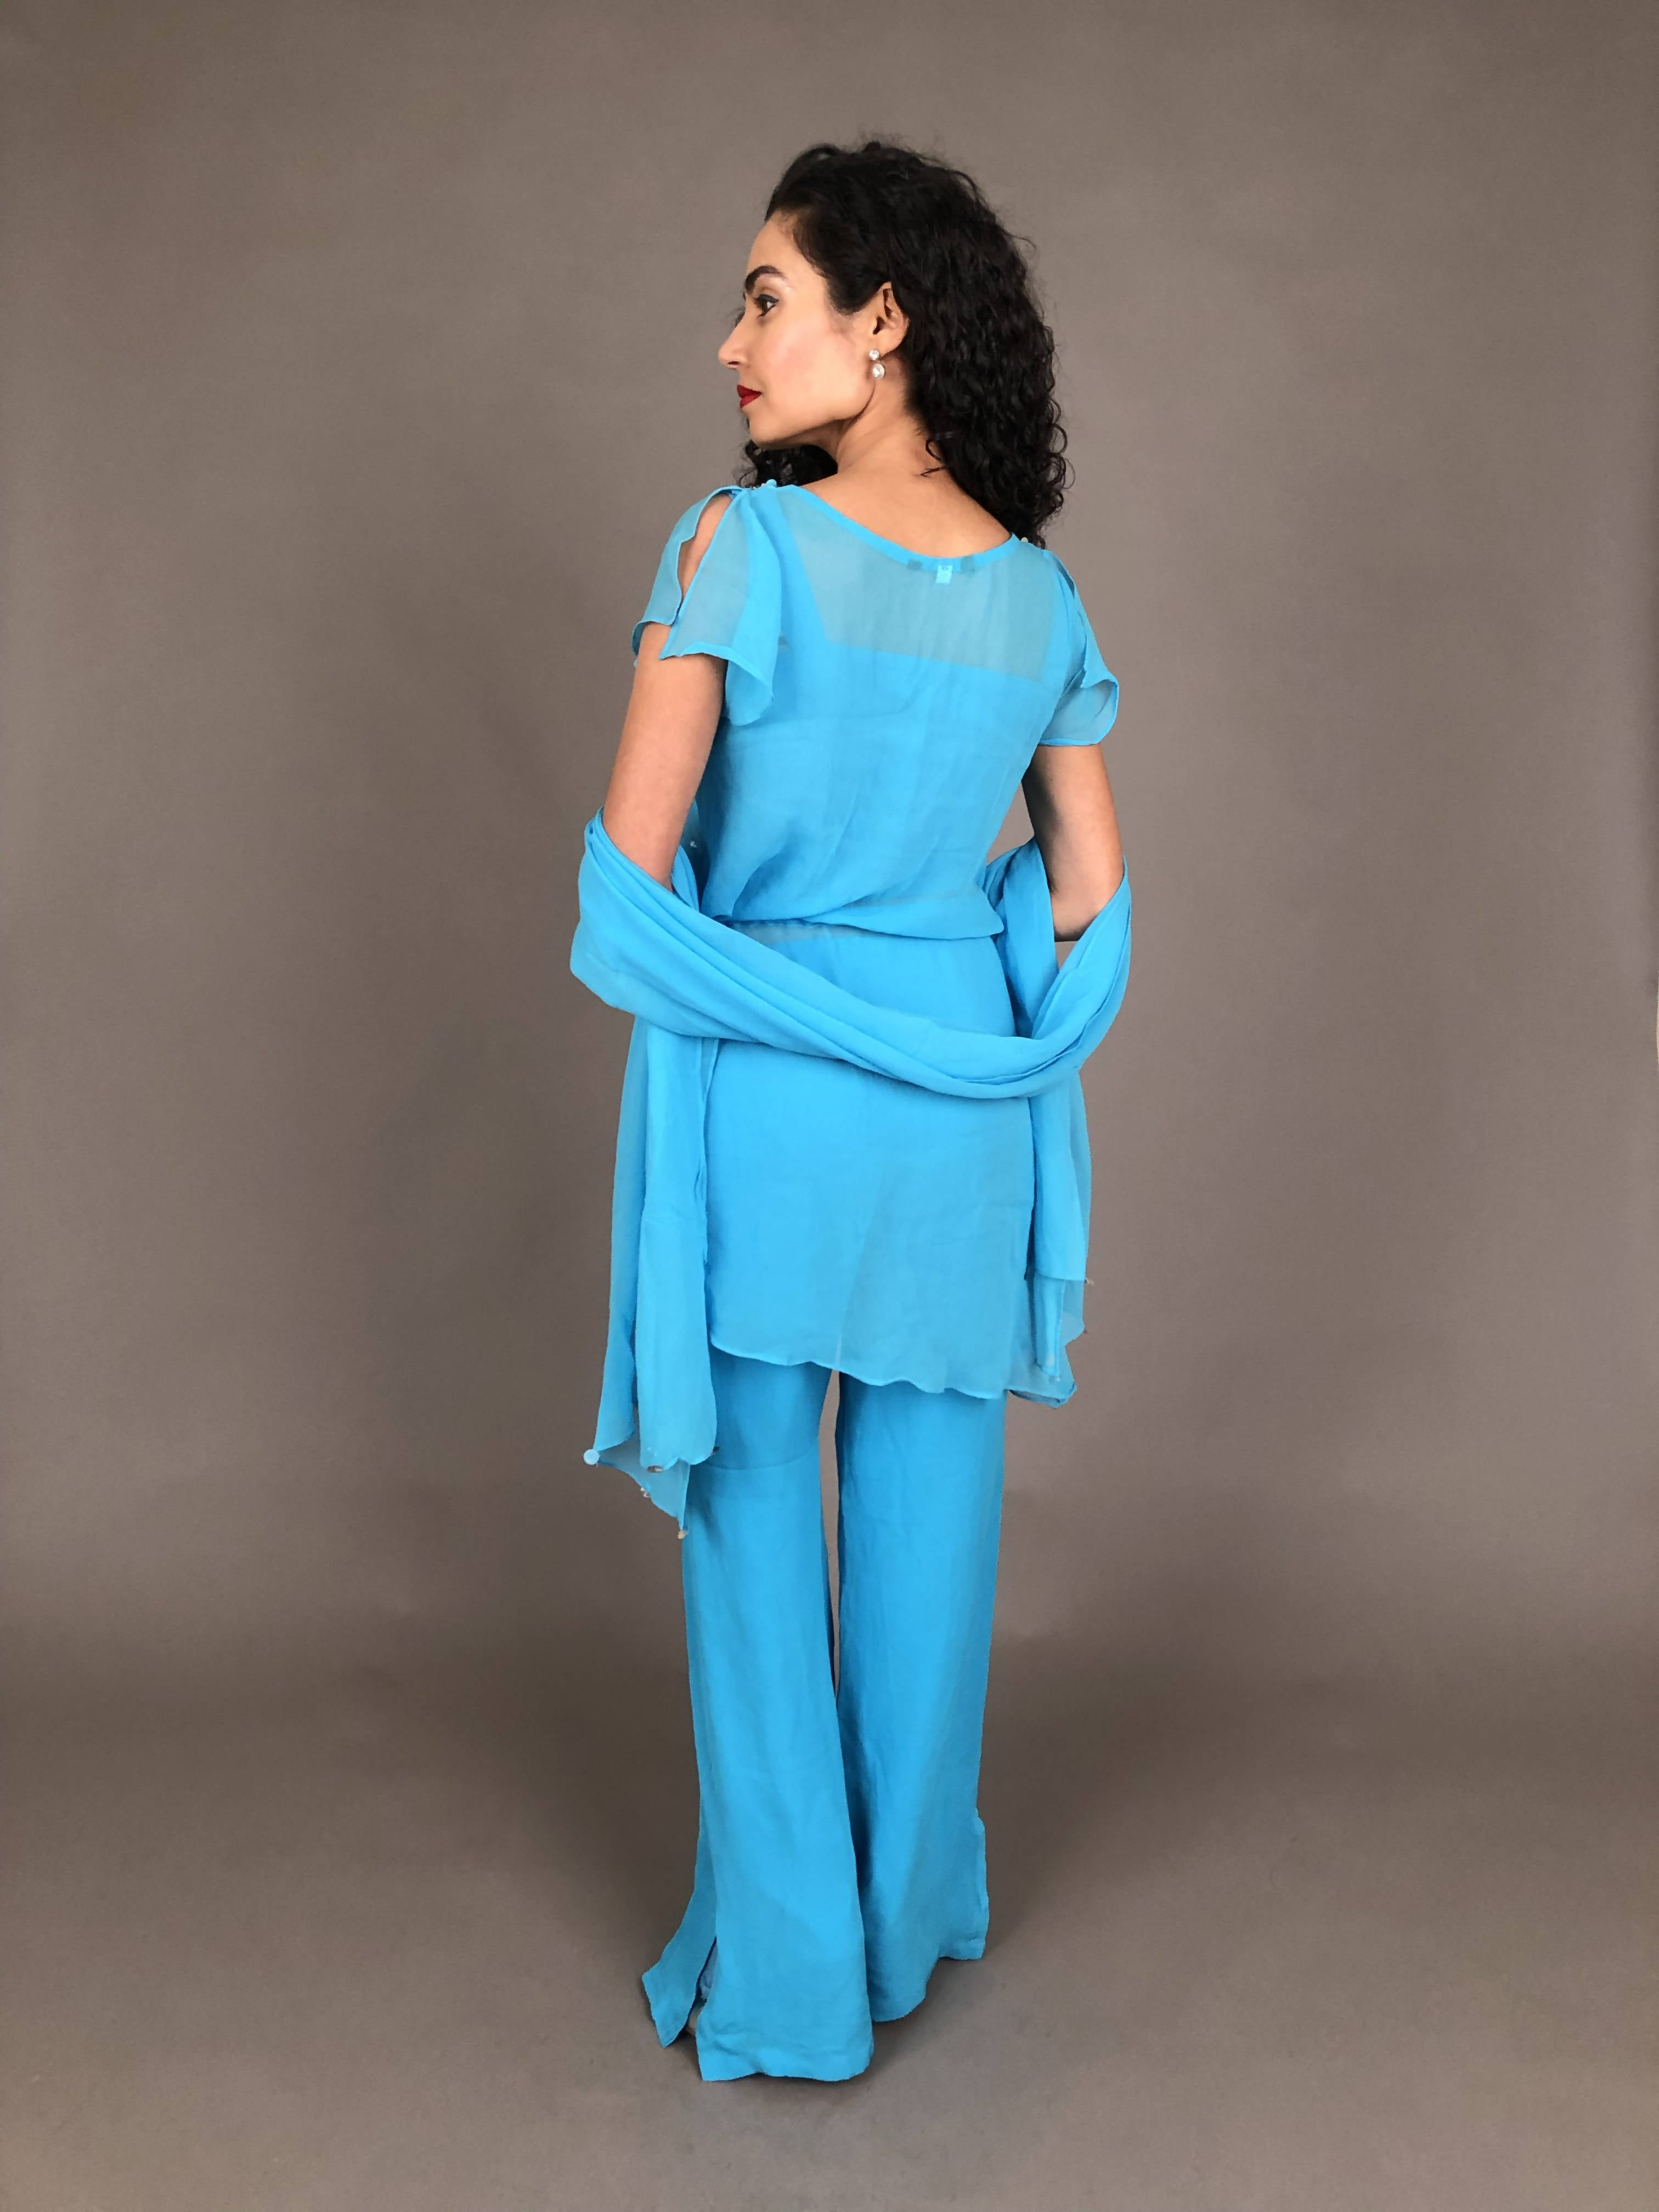 3-Piece Turquoise Eastern Pantsuit